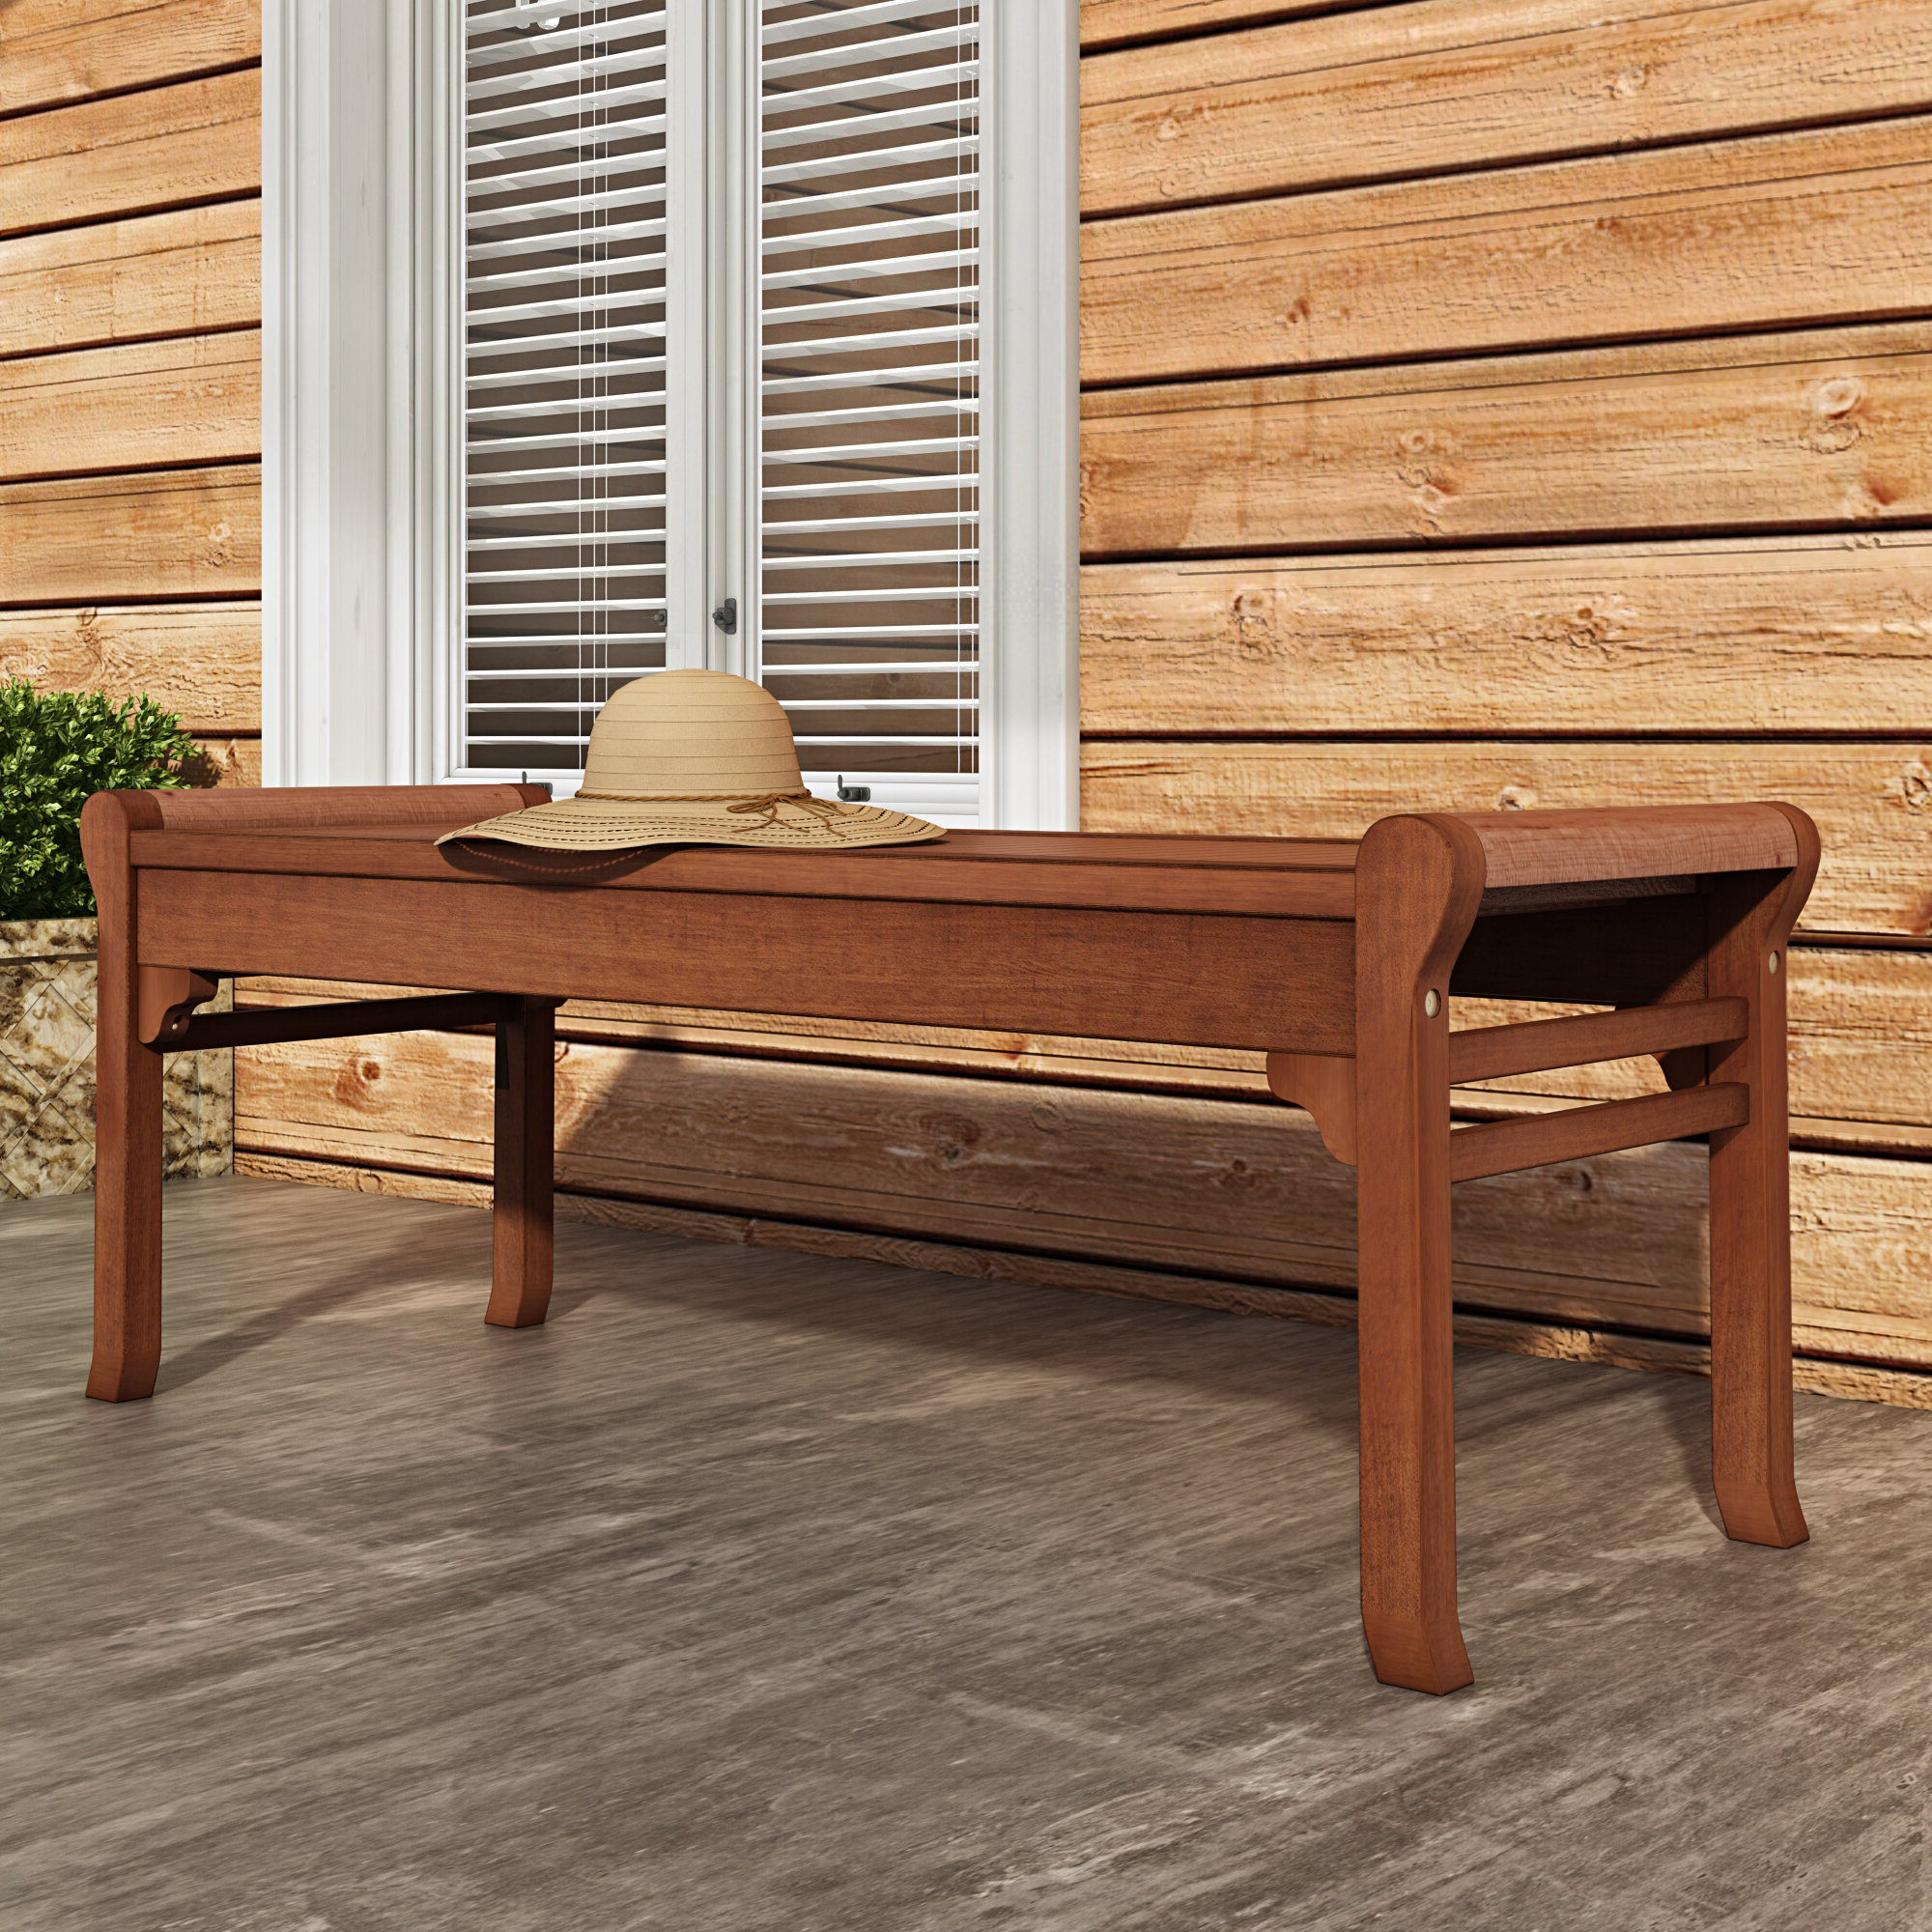 Latest Amabel Patio Diamond Wooden Garden Benches For Nick Wooden Picnic Bench (View 15 of 30)